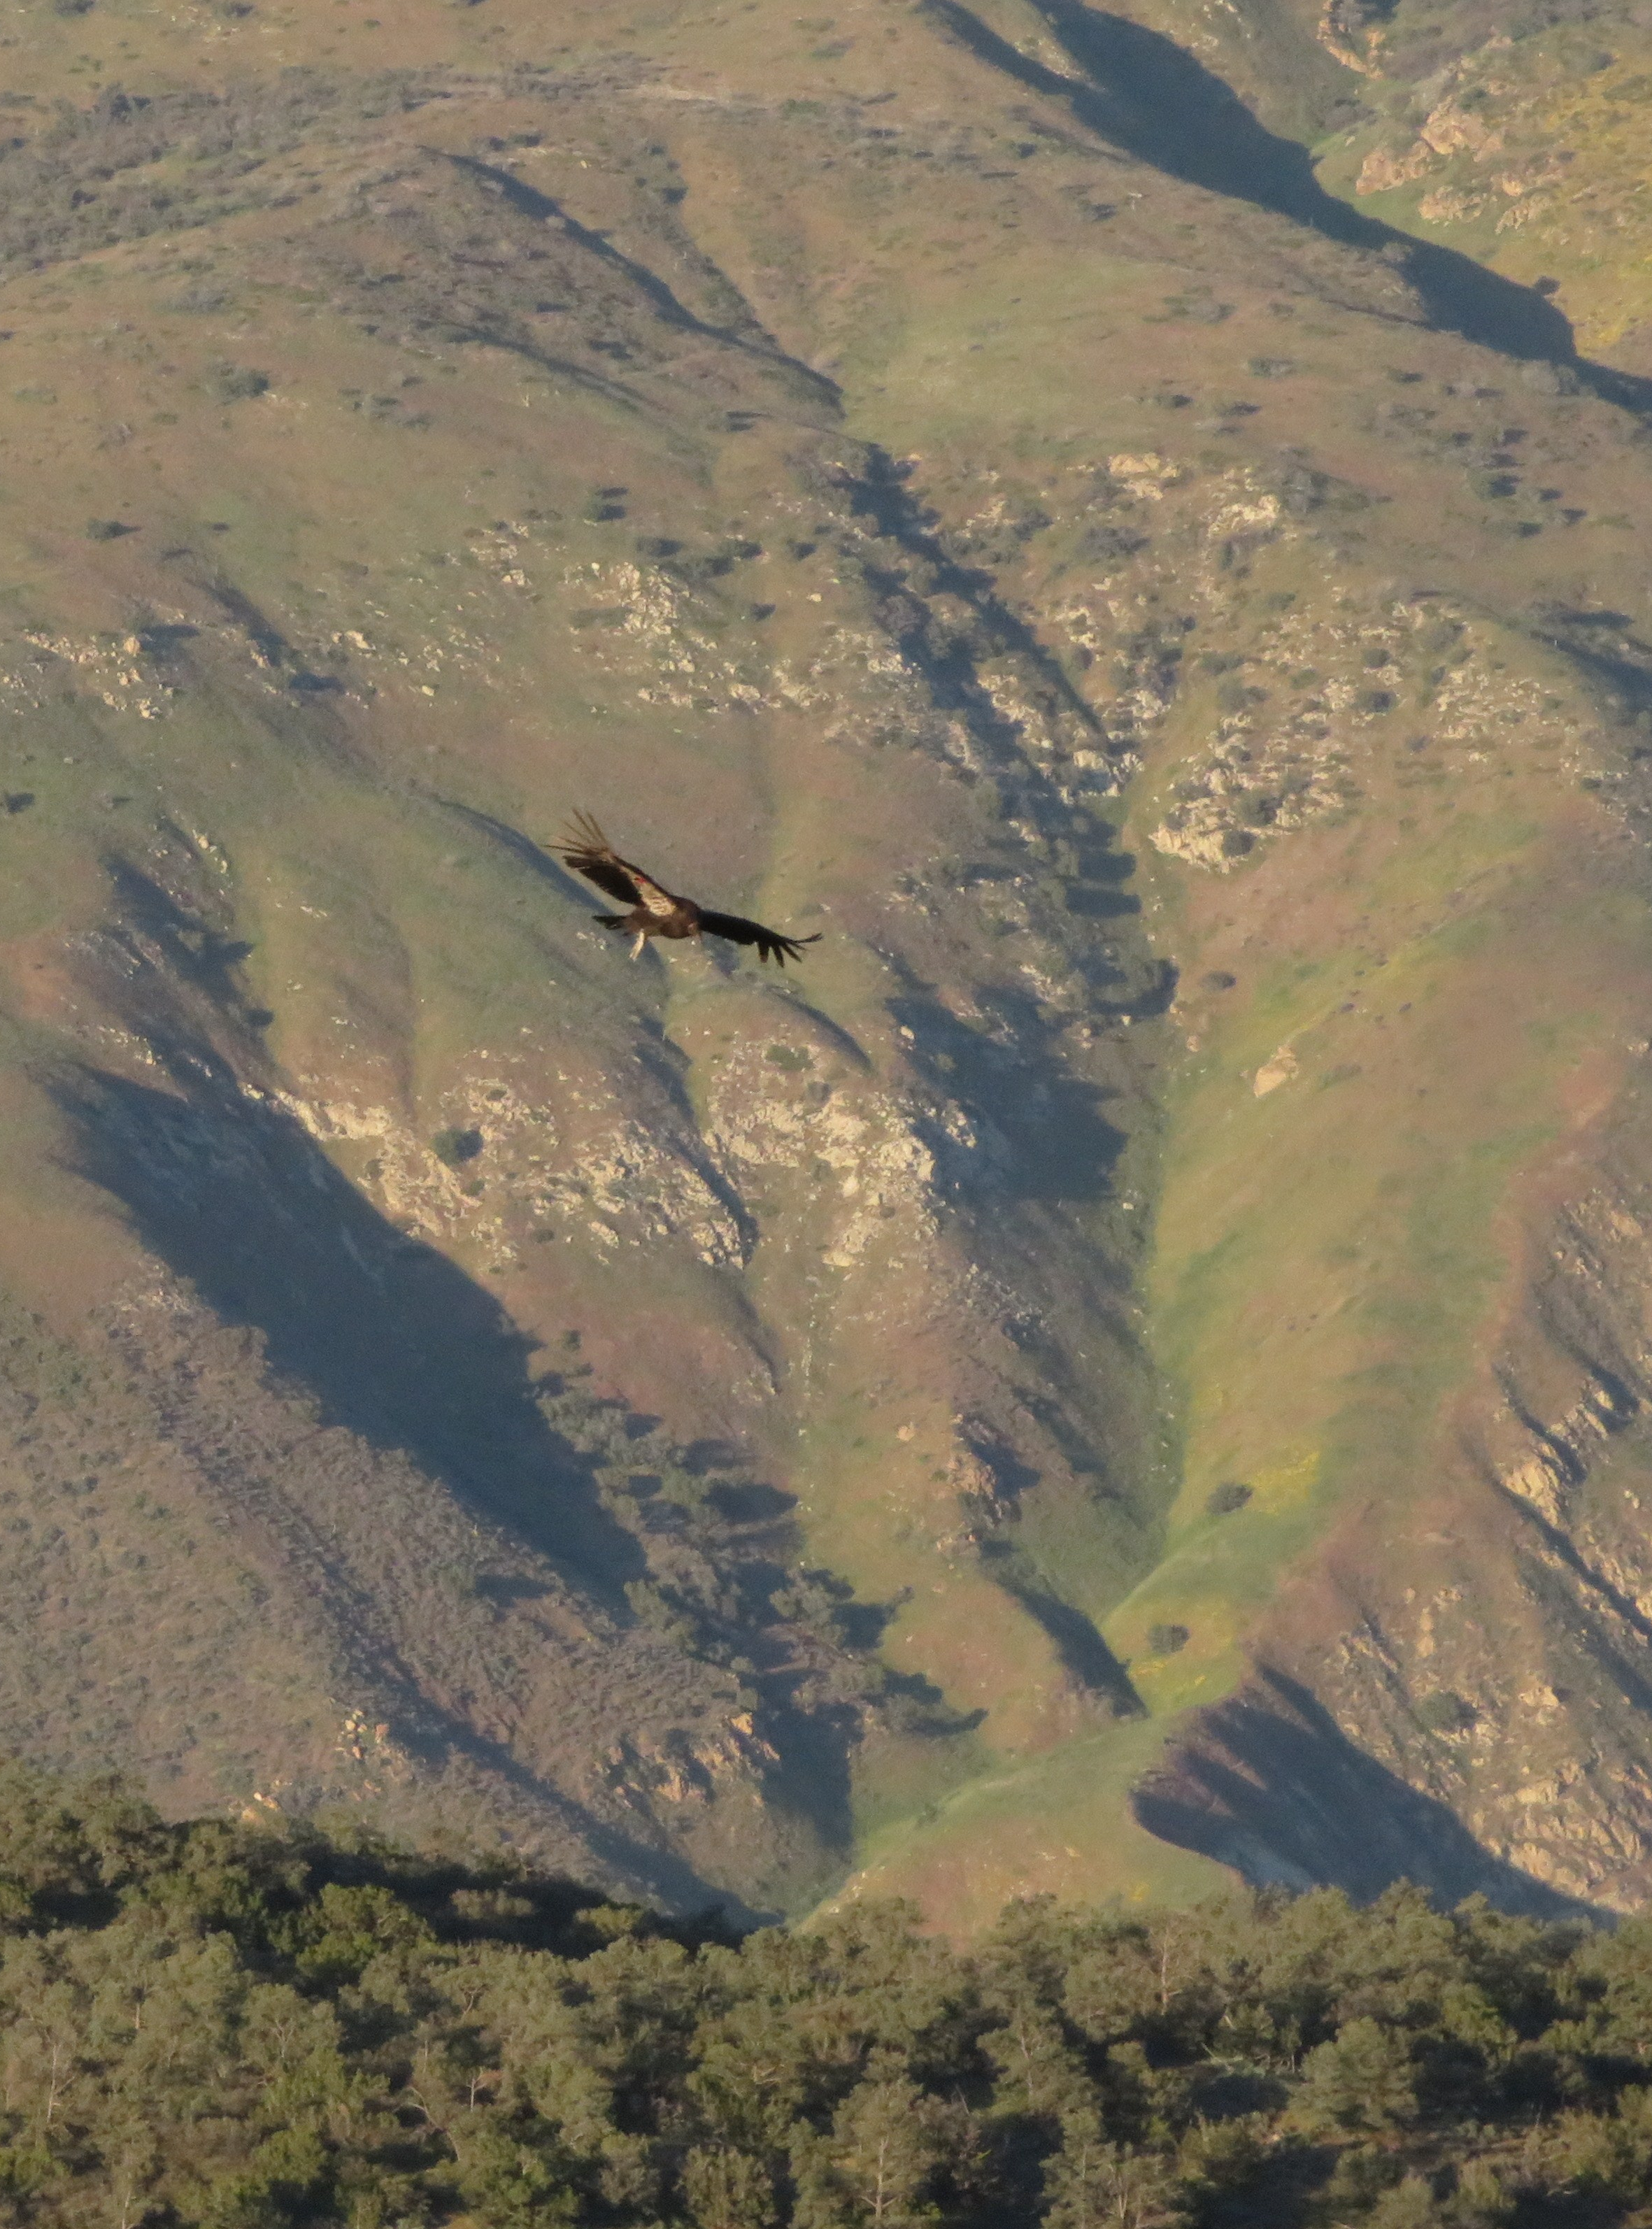 Condor on the wing